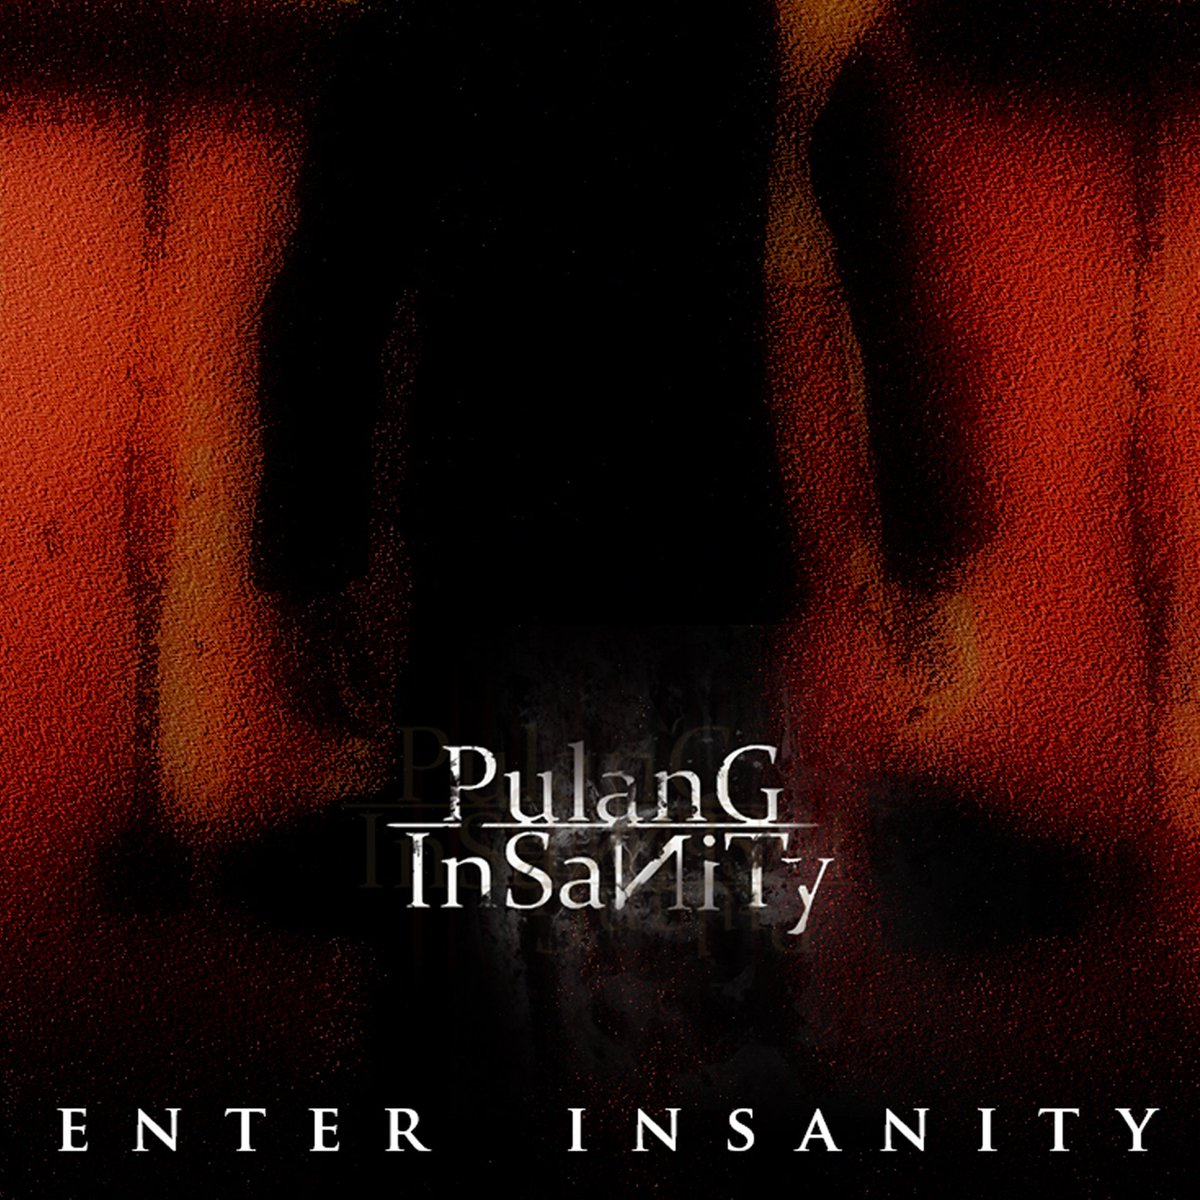 WISHLIST & PLAY THE DEMO NOW https://store.steampowered.com/app/1069210/Pulang__Insanity/ …  Website : http://pulanginsanity.com/   #EnterInsanity #ComingSoon #Games #Steam #Indonesia #horror #SurvivalHorror #PsychologicalHorror #pulanginsanity #NewDemoUpdatepic.twitter.com/oduForKIsR